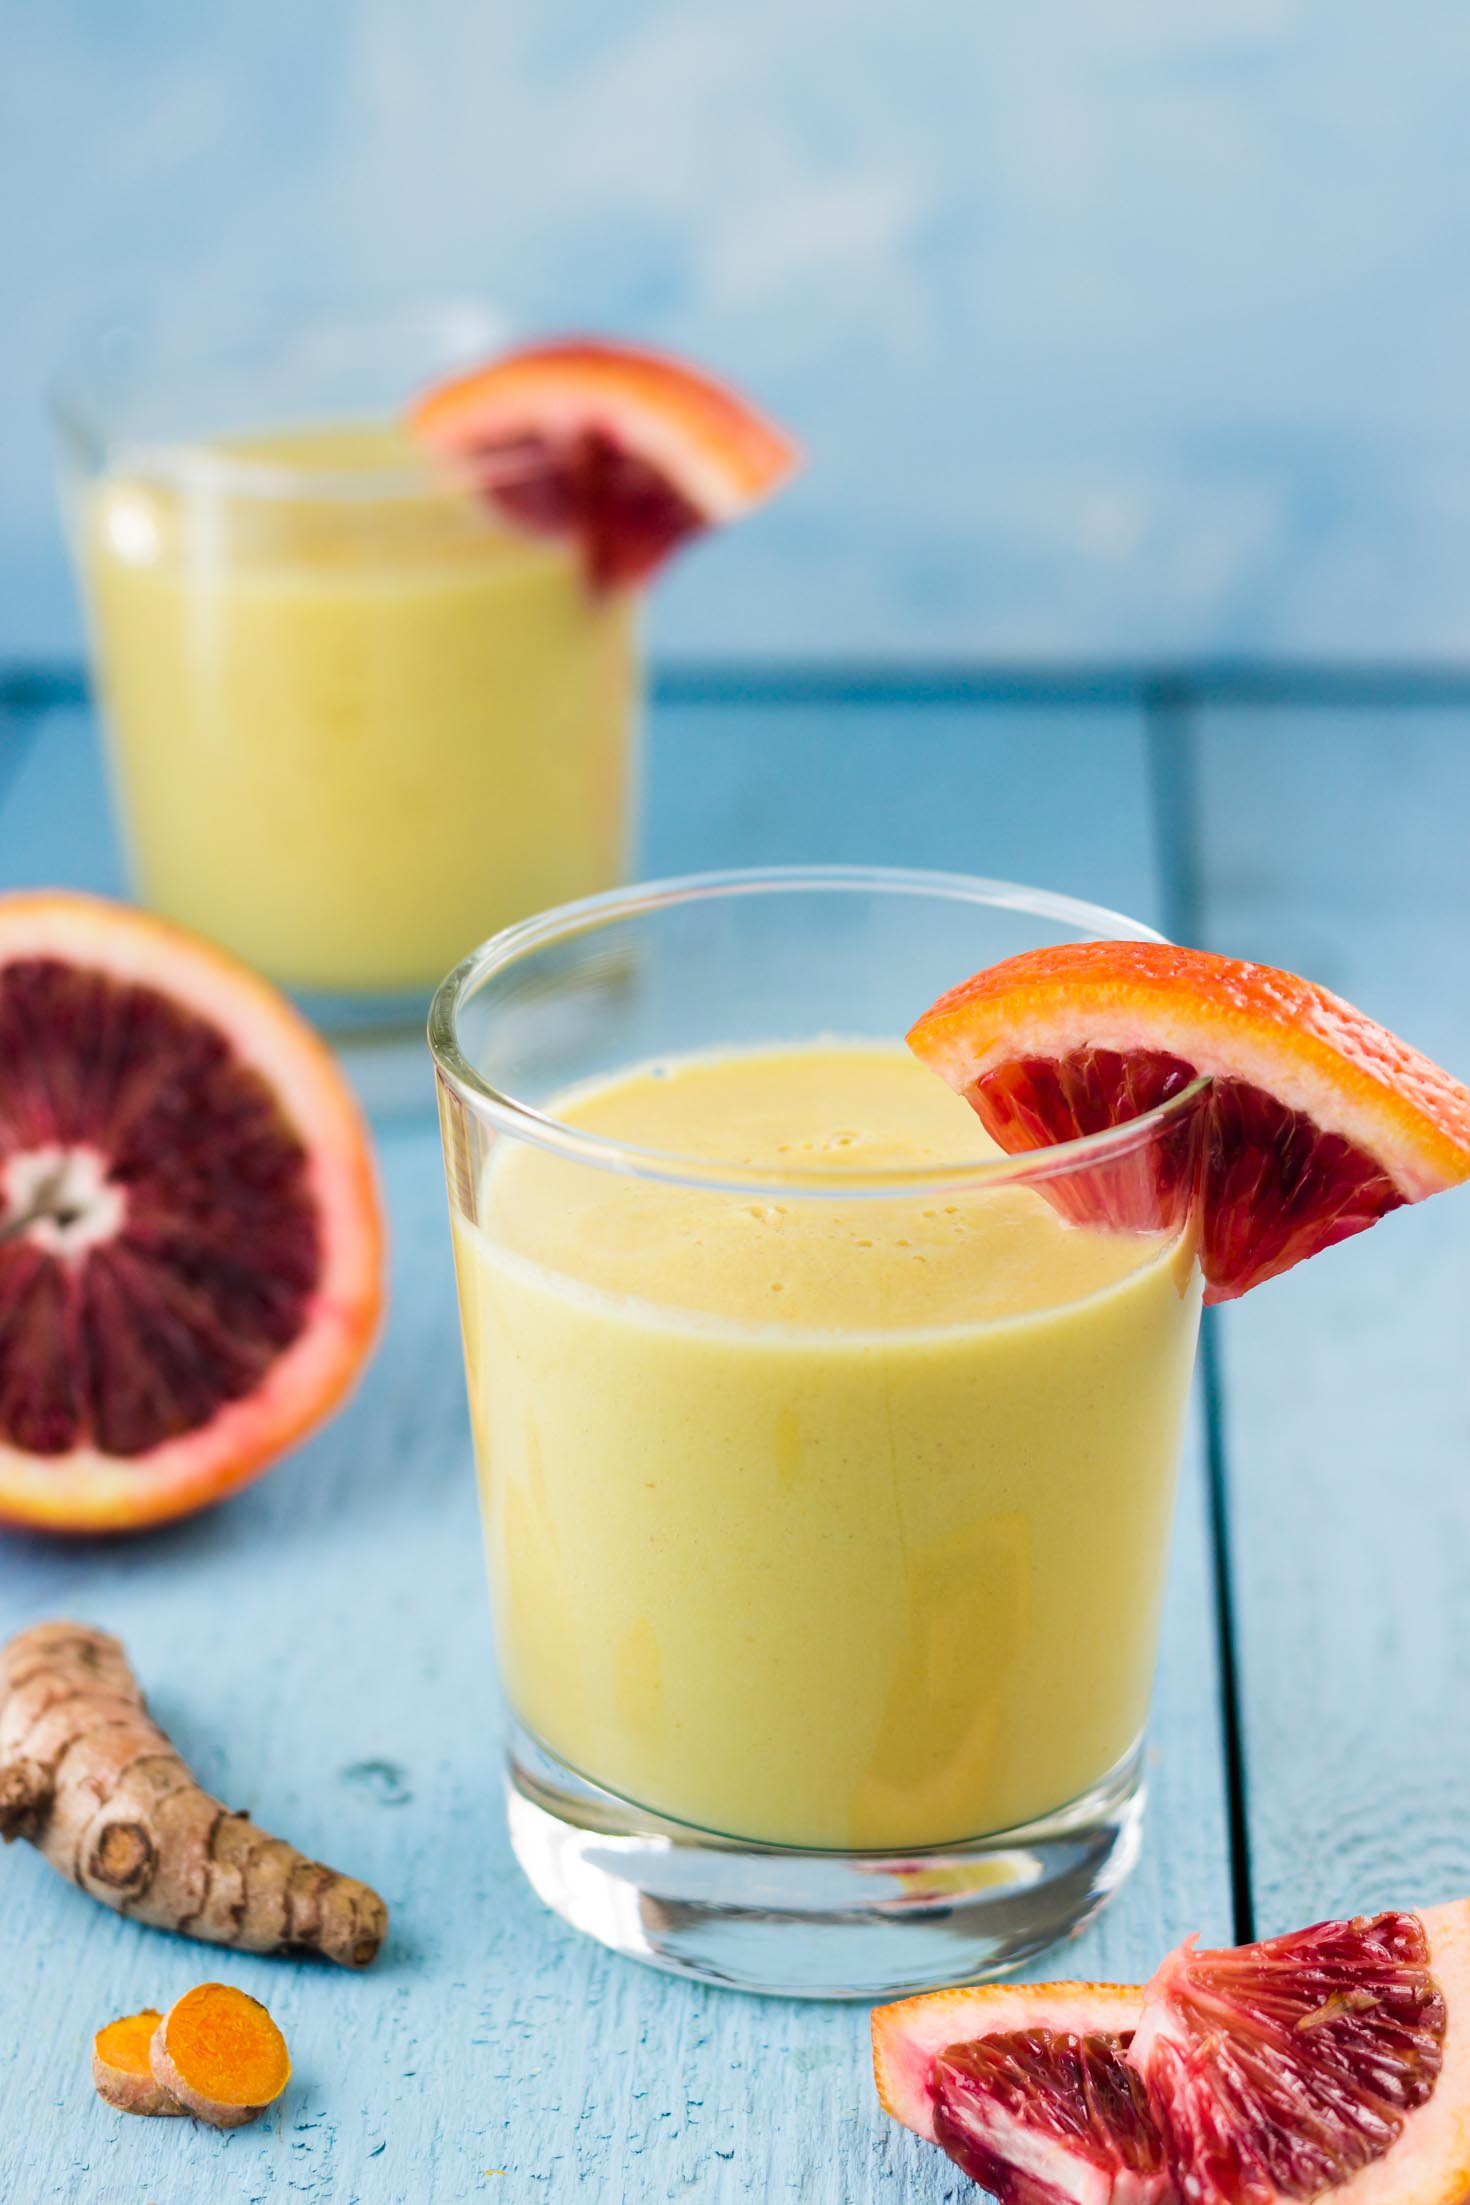 Cardamom Turmeric Spiced Golden Tropical Smoothie-sideview in a glass with blood orange garnish